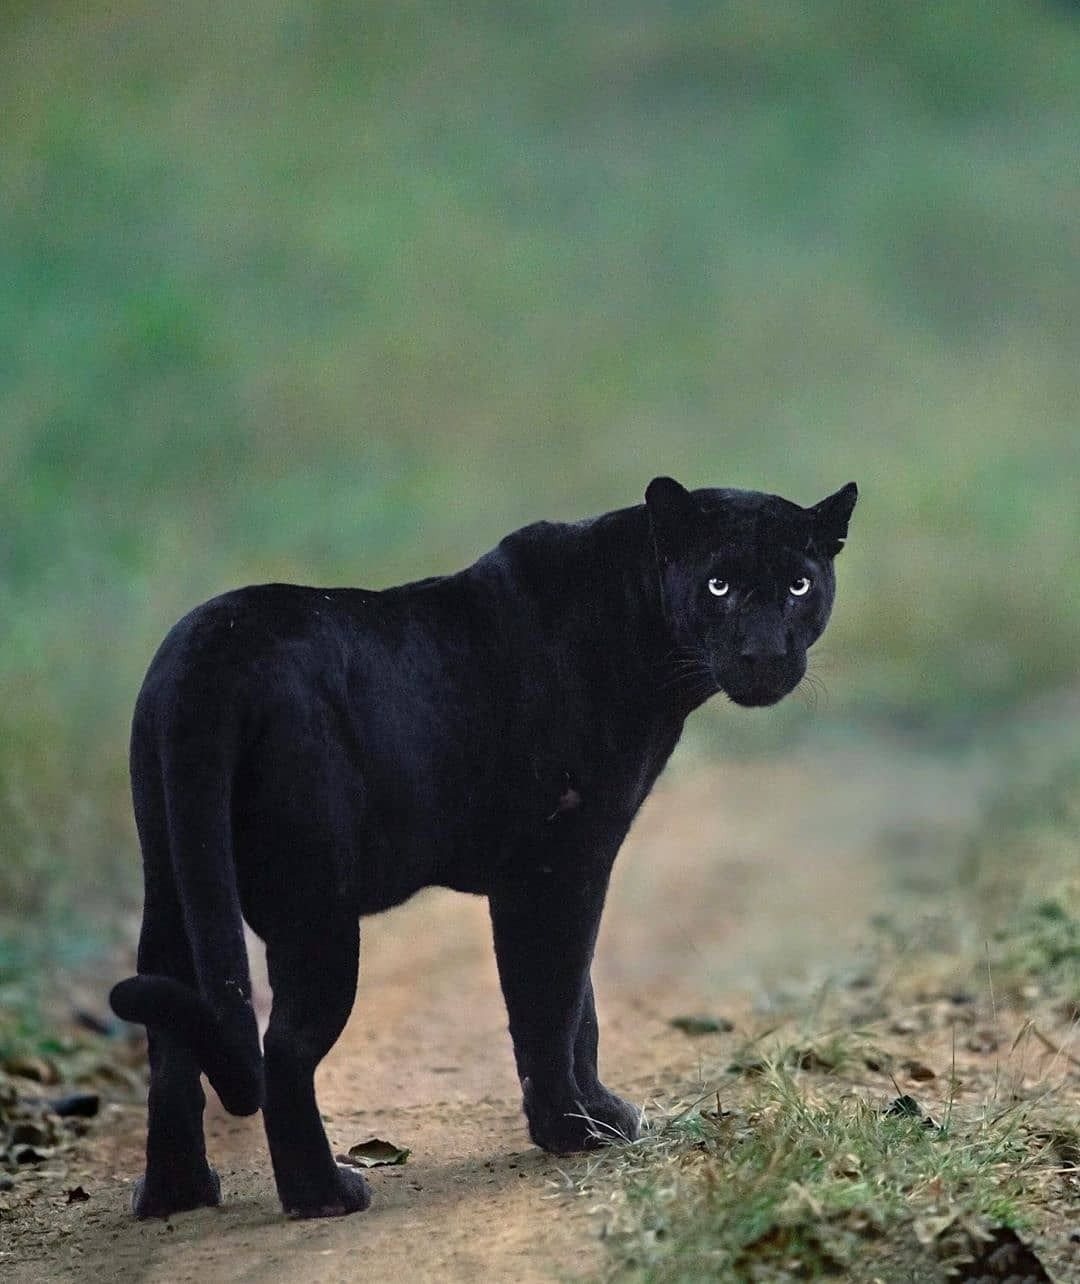 Big Cats WildLife — A mesmerising photo of a Black